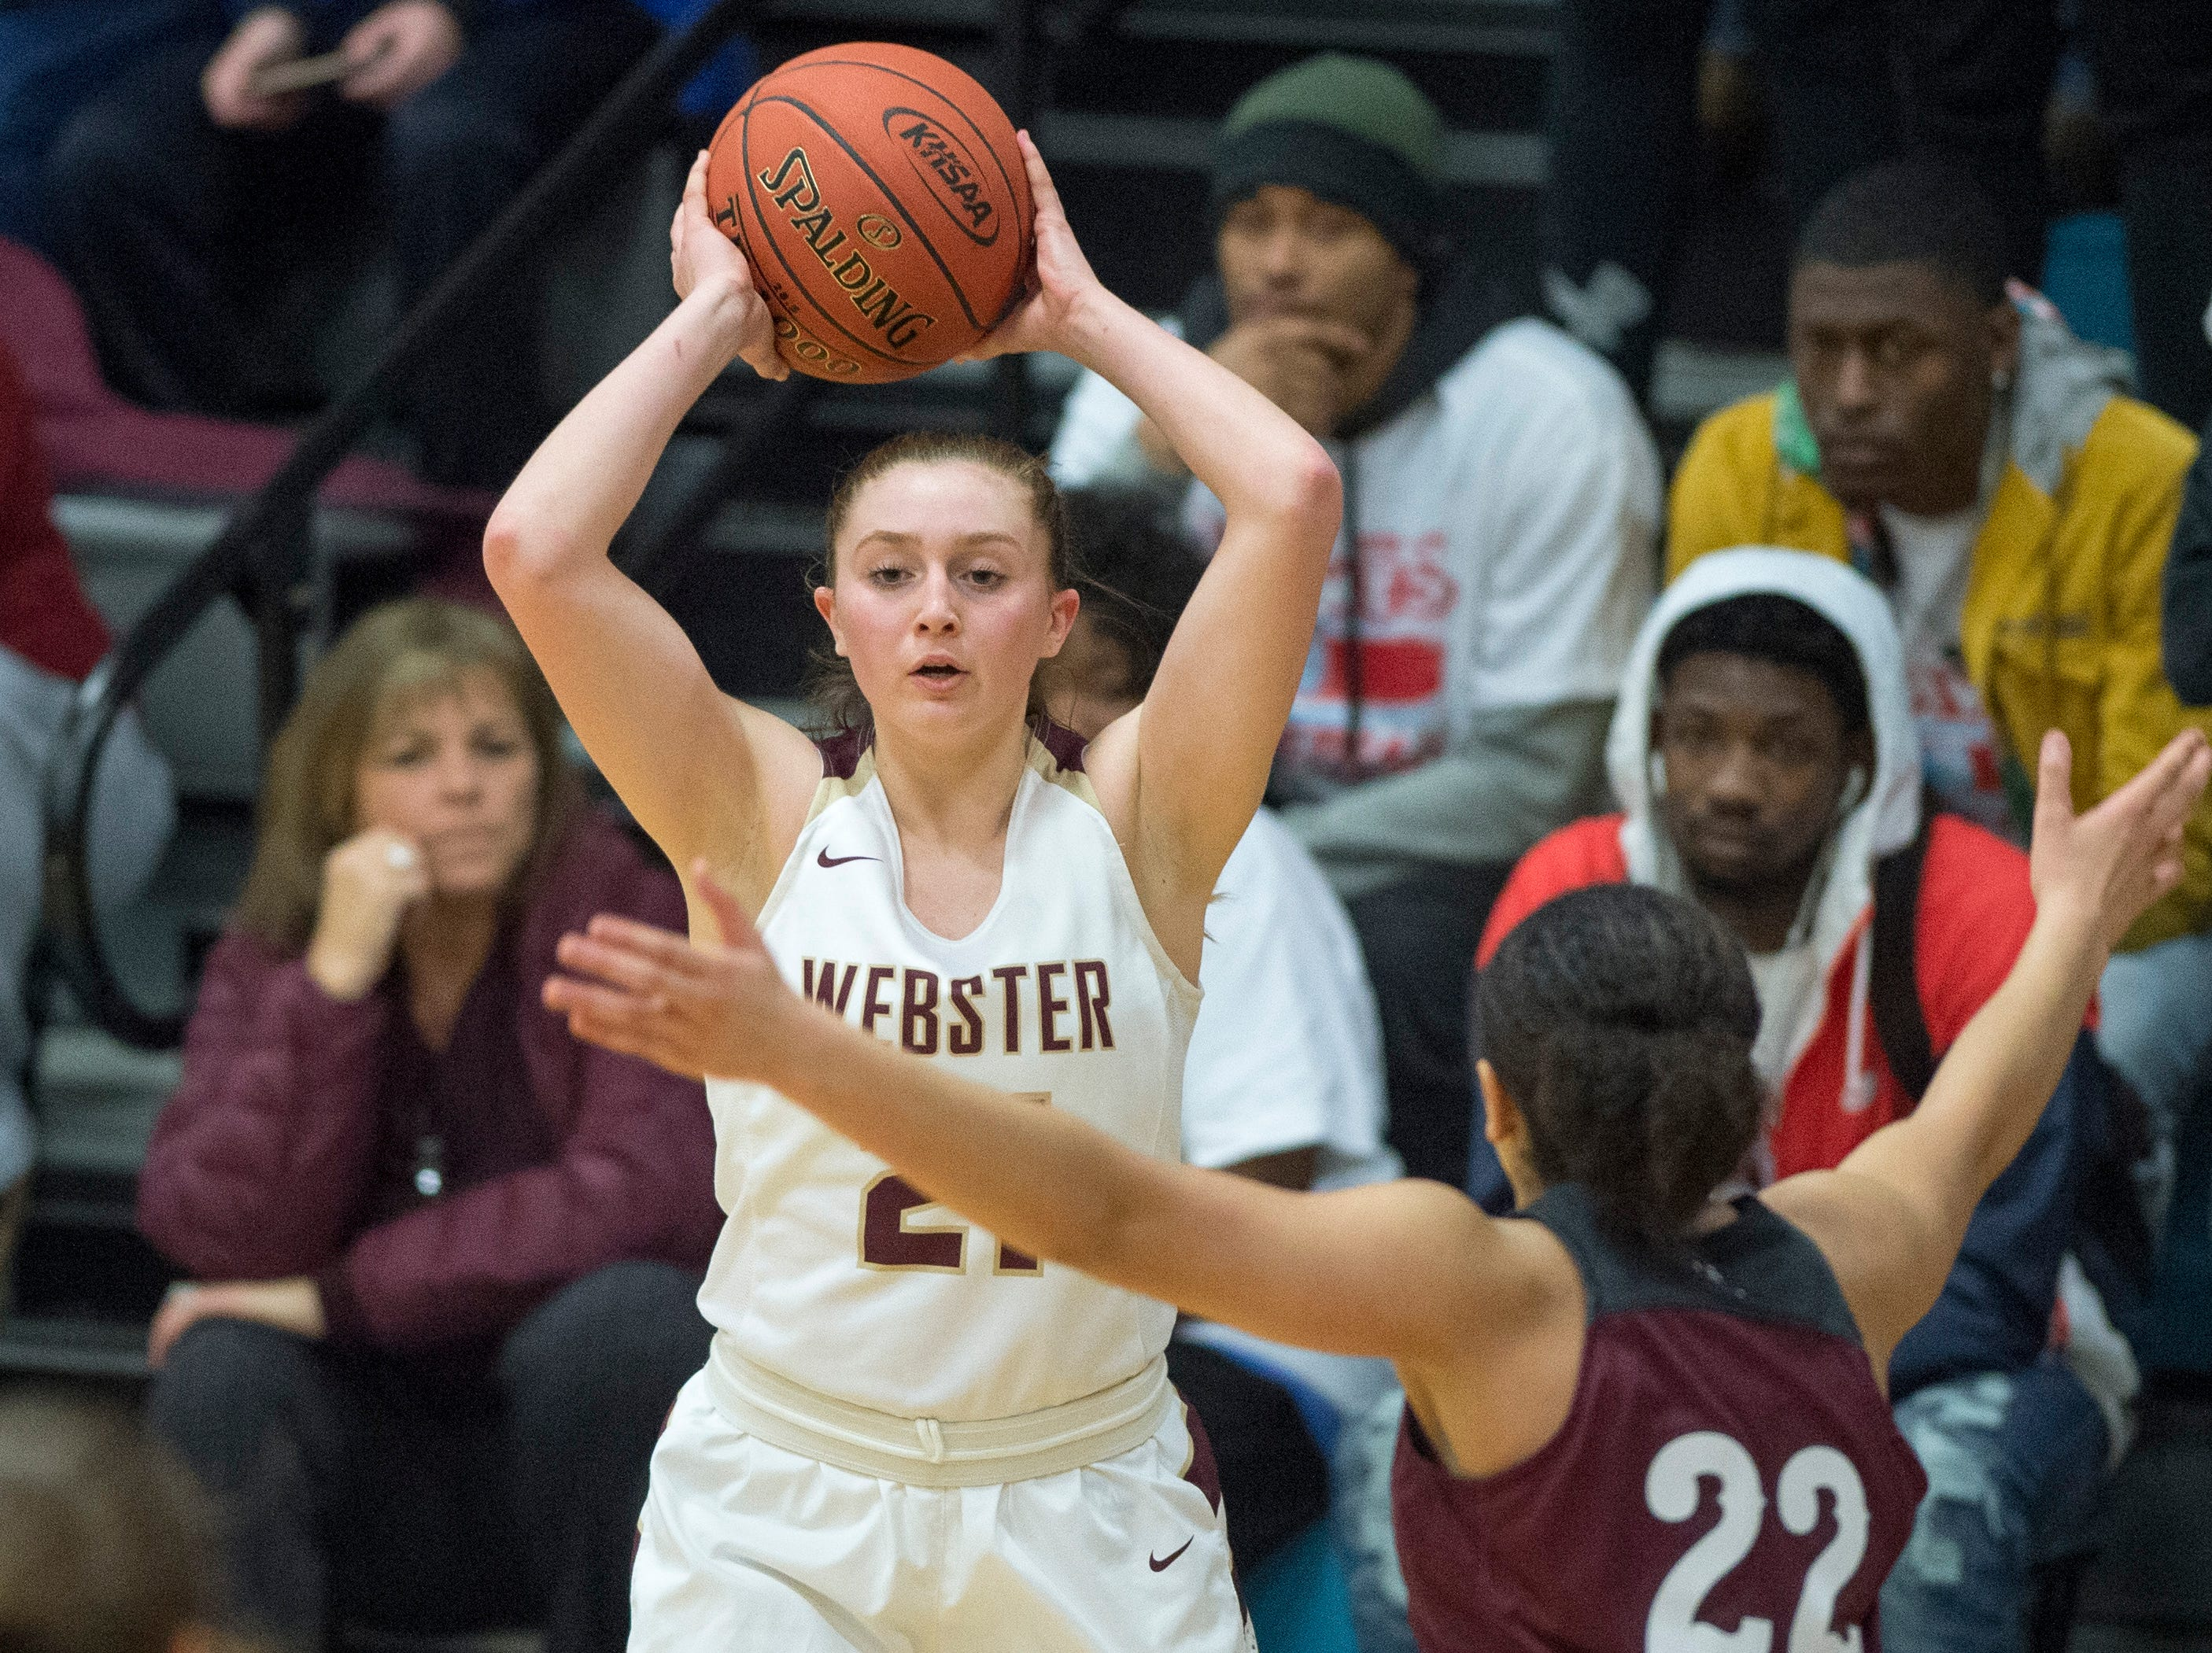 Webster County's Mariah Austin (21)  passes the ball during the 2019 Sixth District championship game against the Henderson County Lady Colonels at Union County High School Thursday, Feb. 21, 2019.